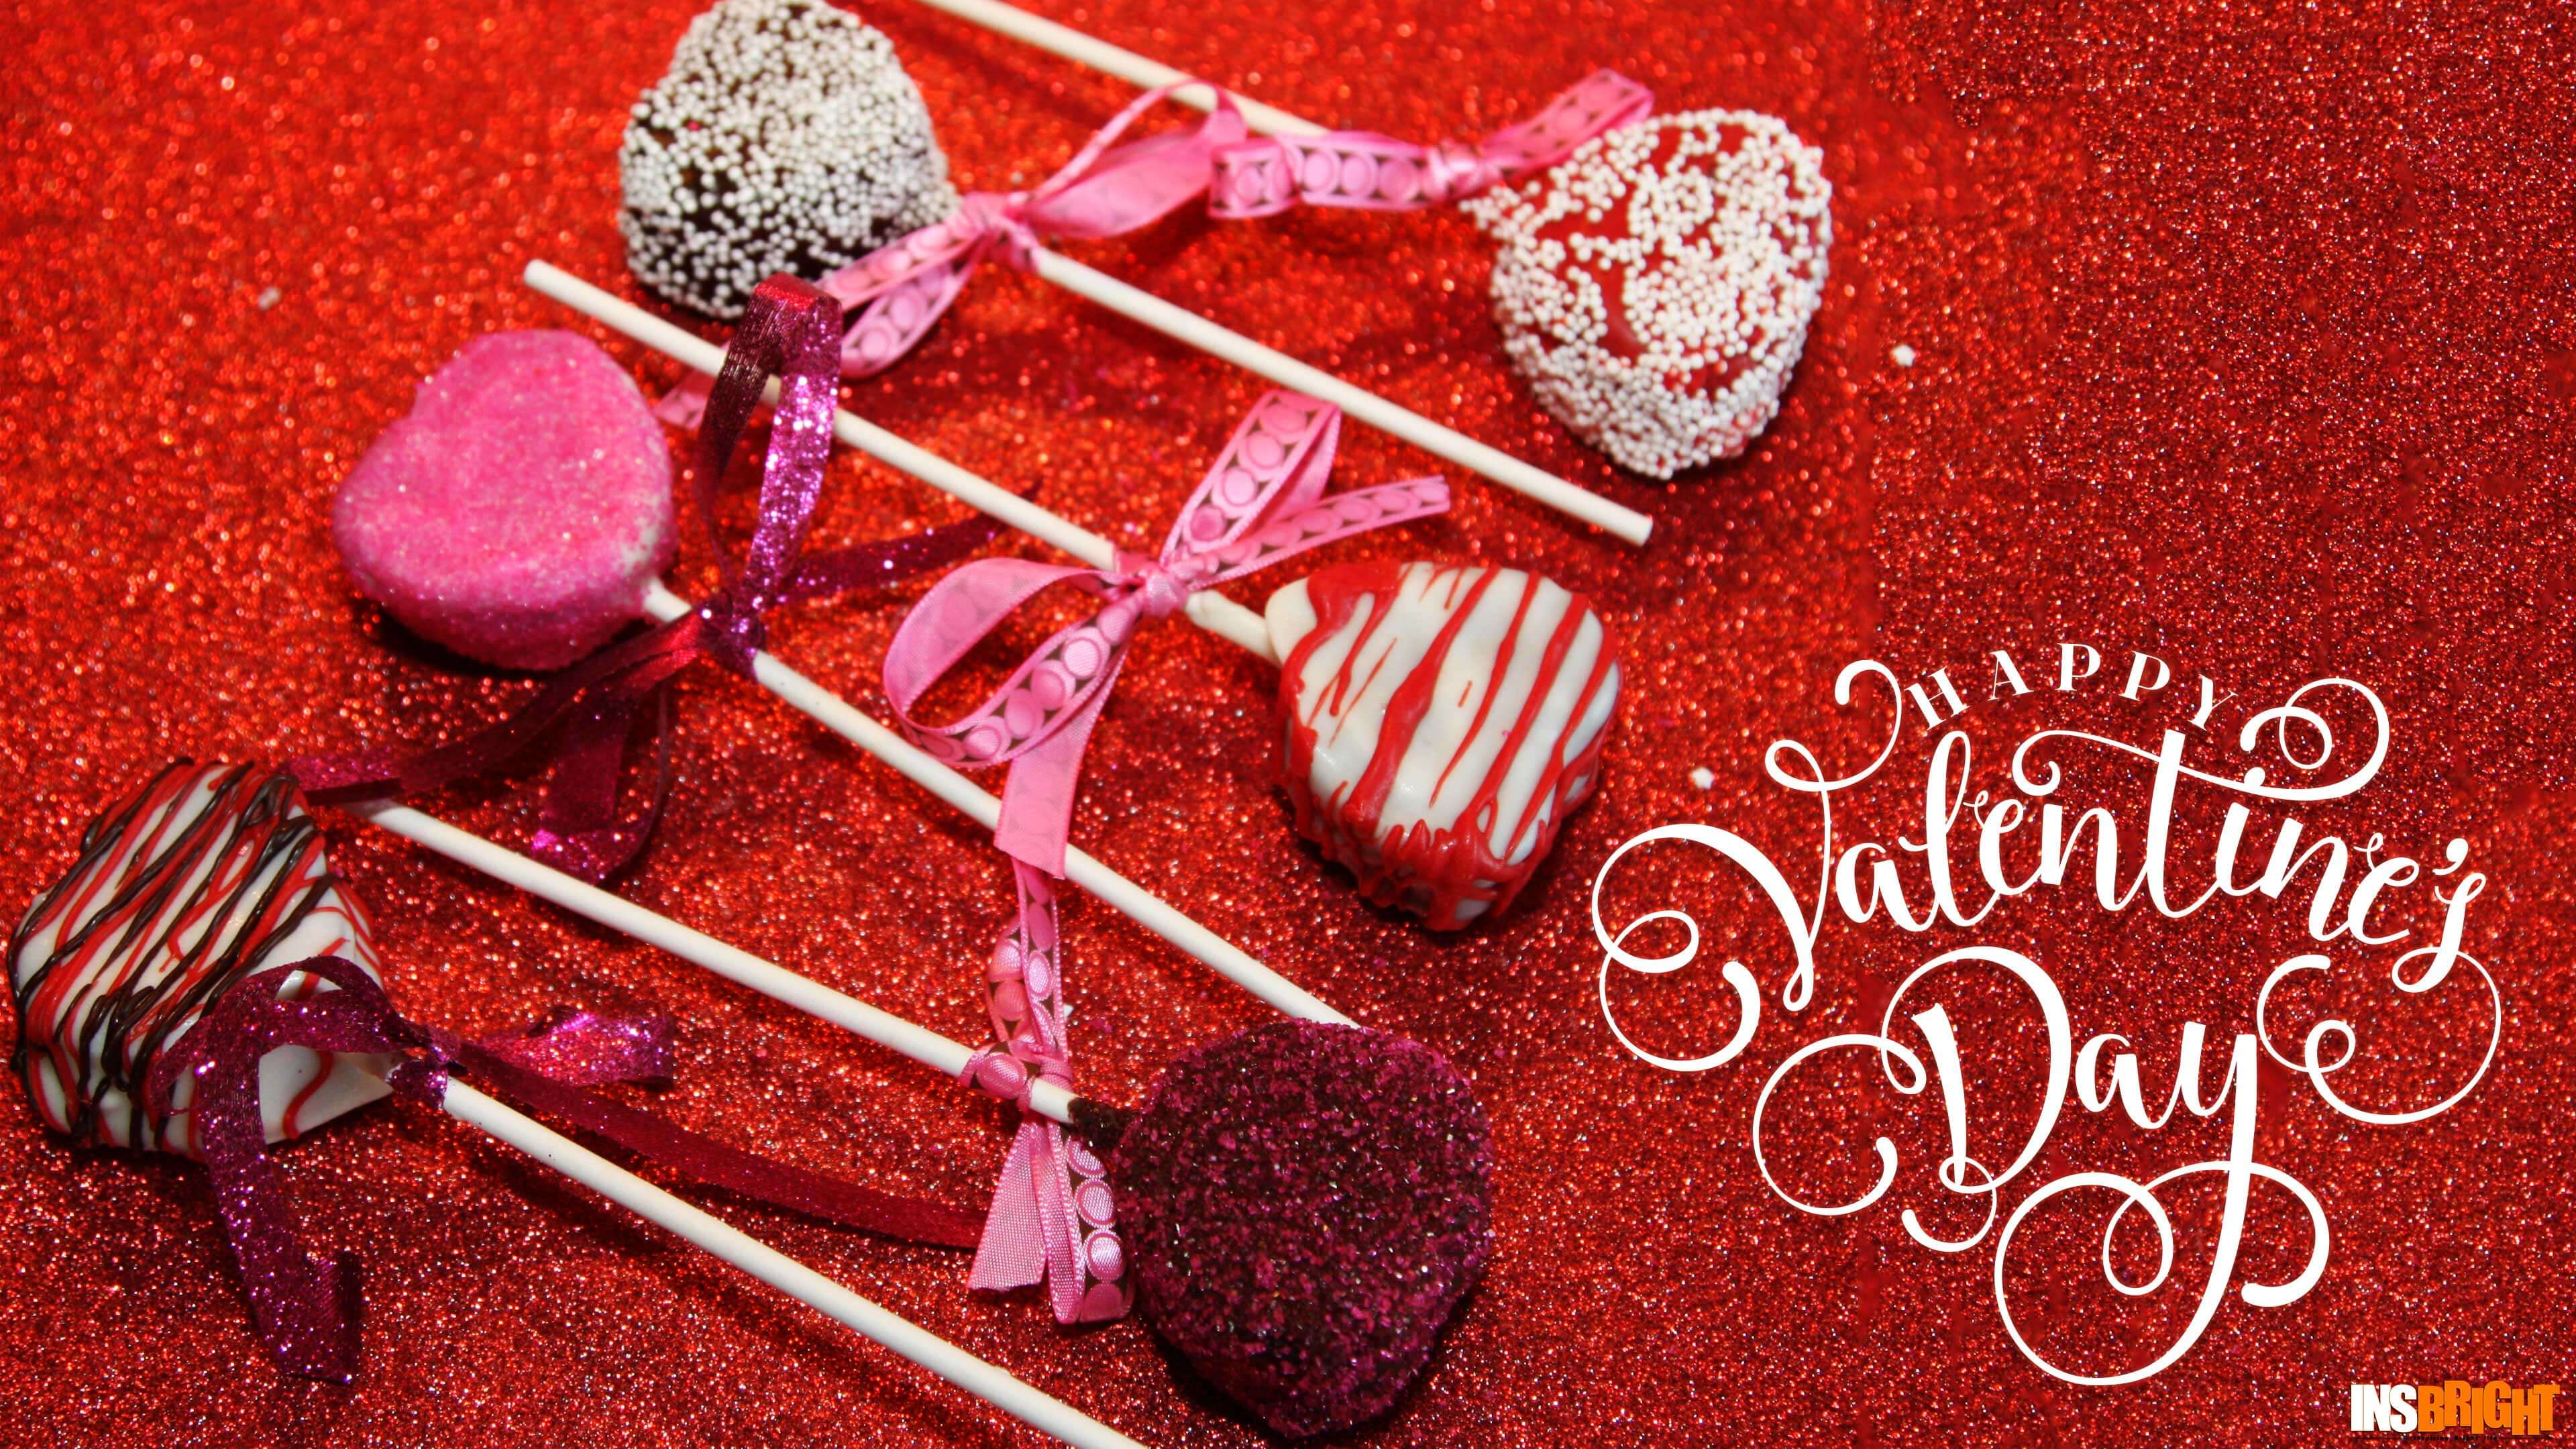 Cute Couples Holding Hands Wallpapers Free Download Hd Valentine S Day Wallpapers 2017 Happy